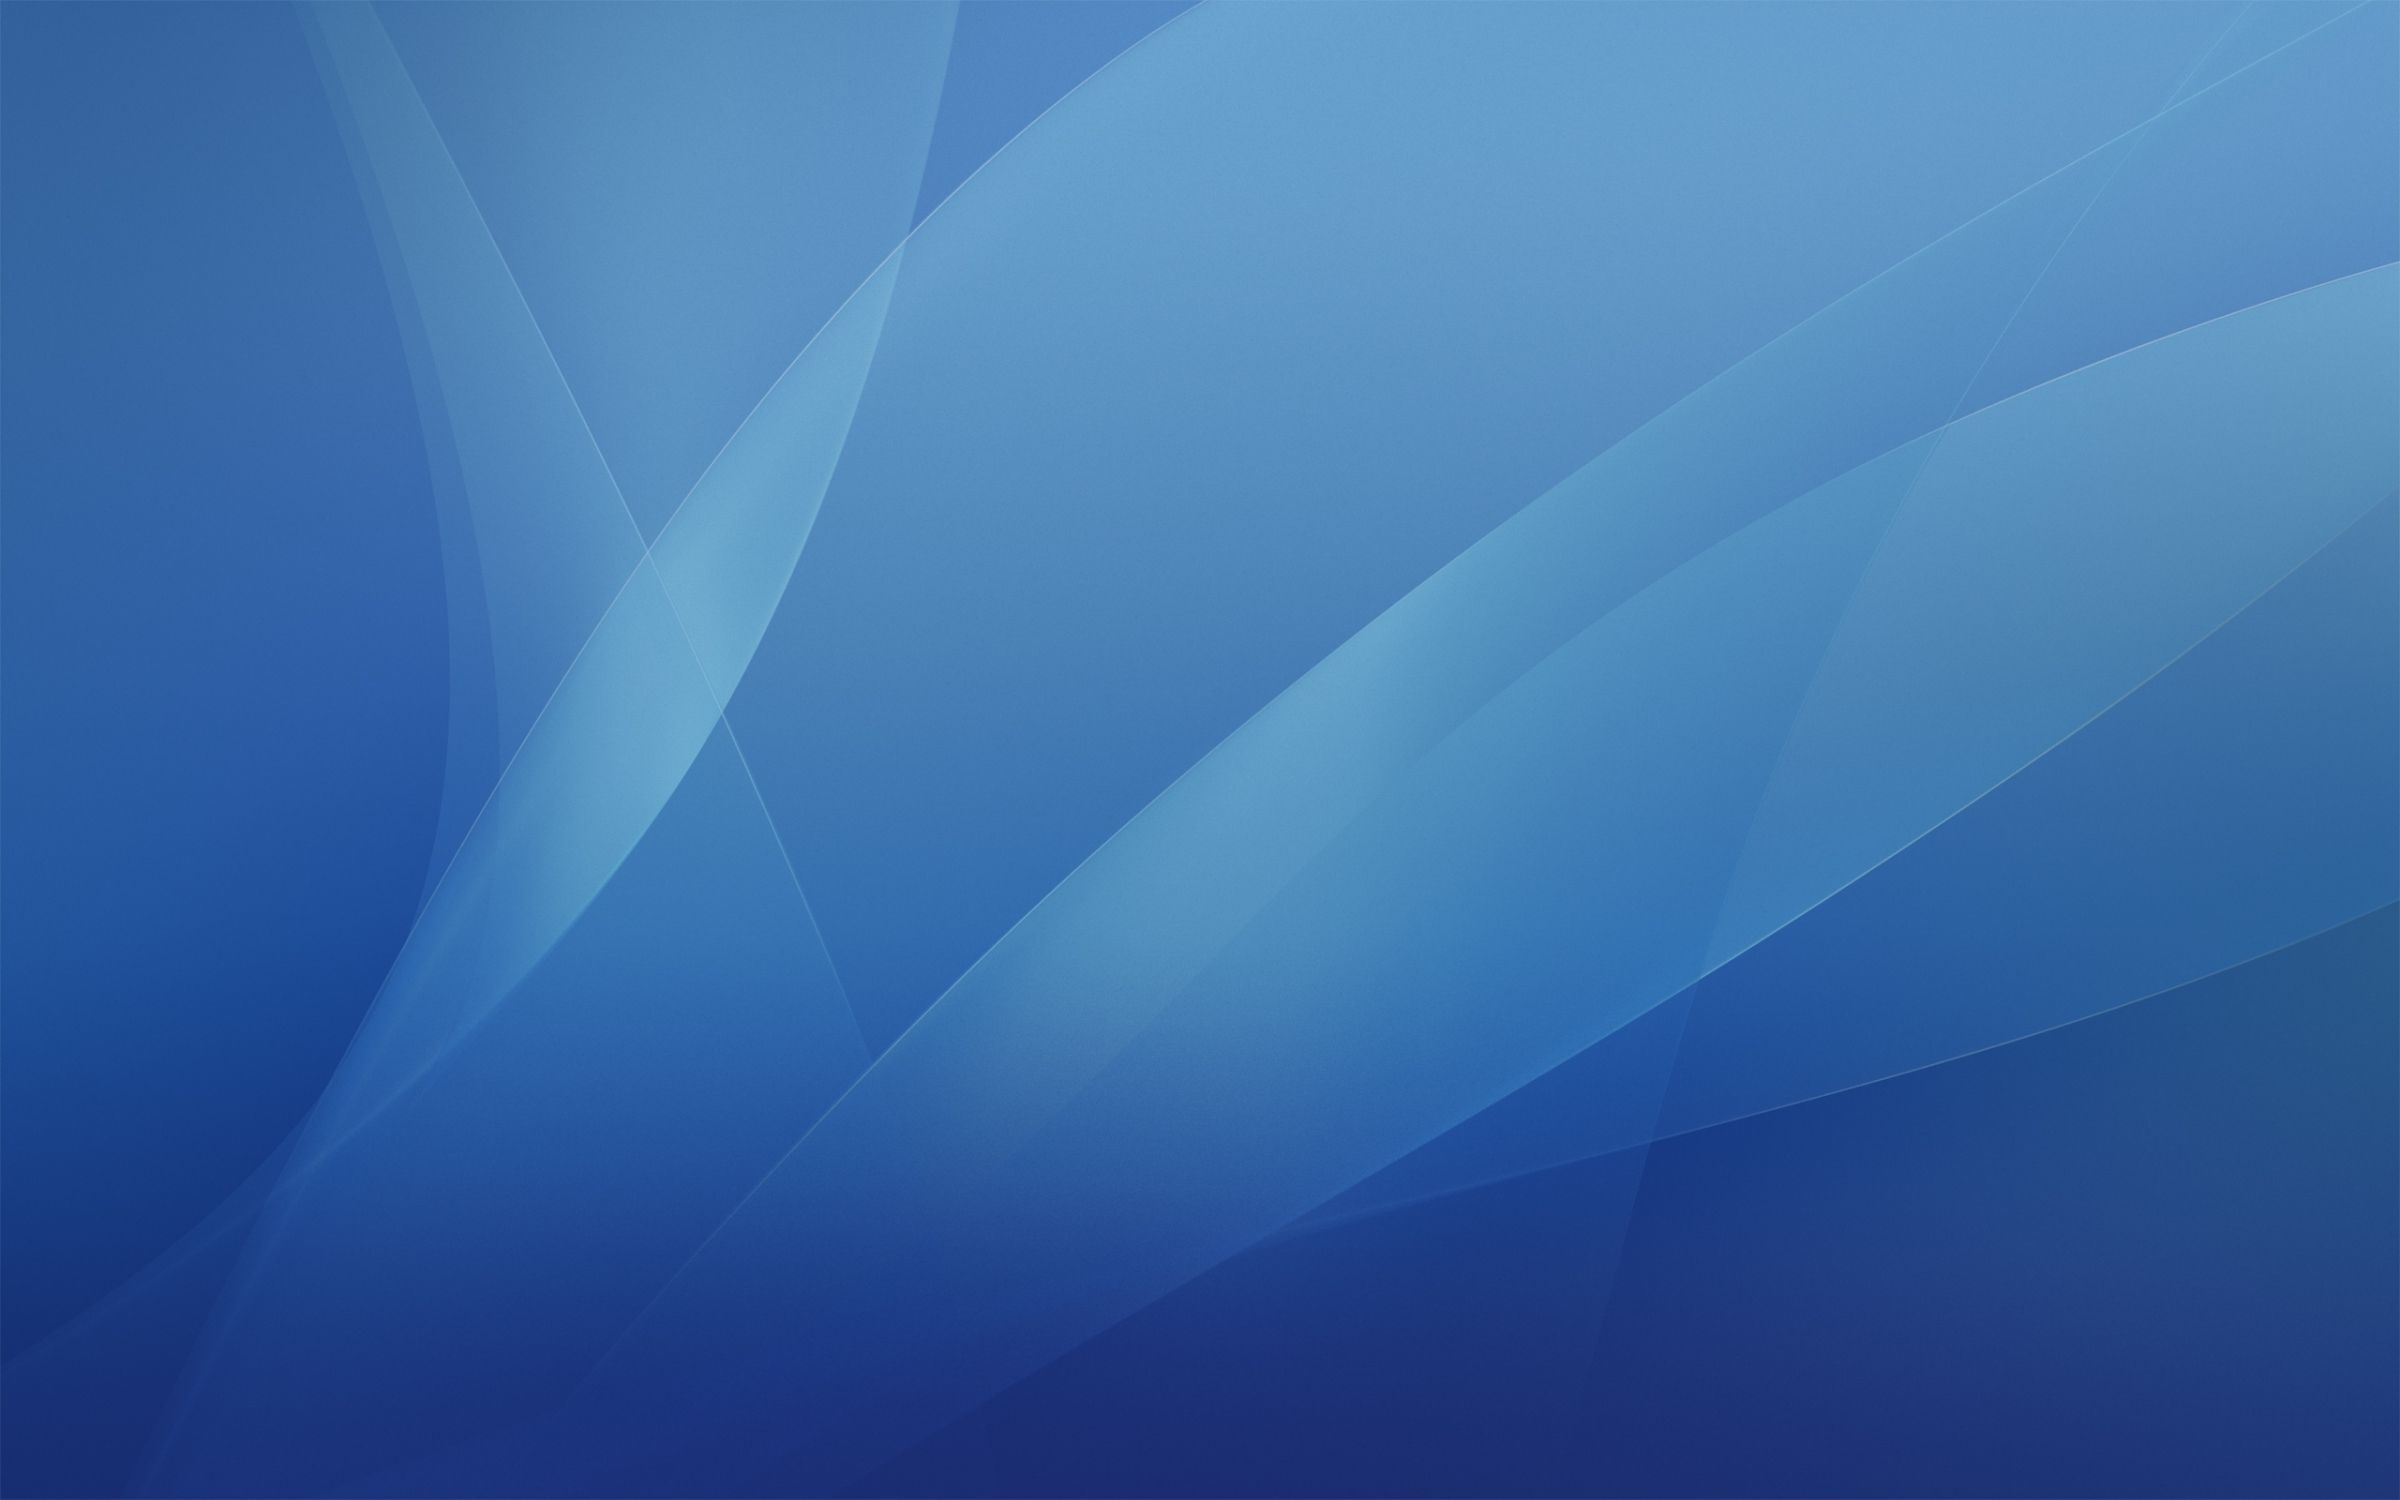 Plain Blue Background Wallpaper Blue Background Wallpapers Mac Wallpaper Desktop Wallpapers Backgrounds